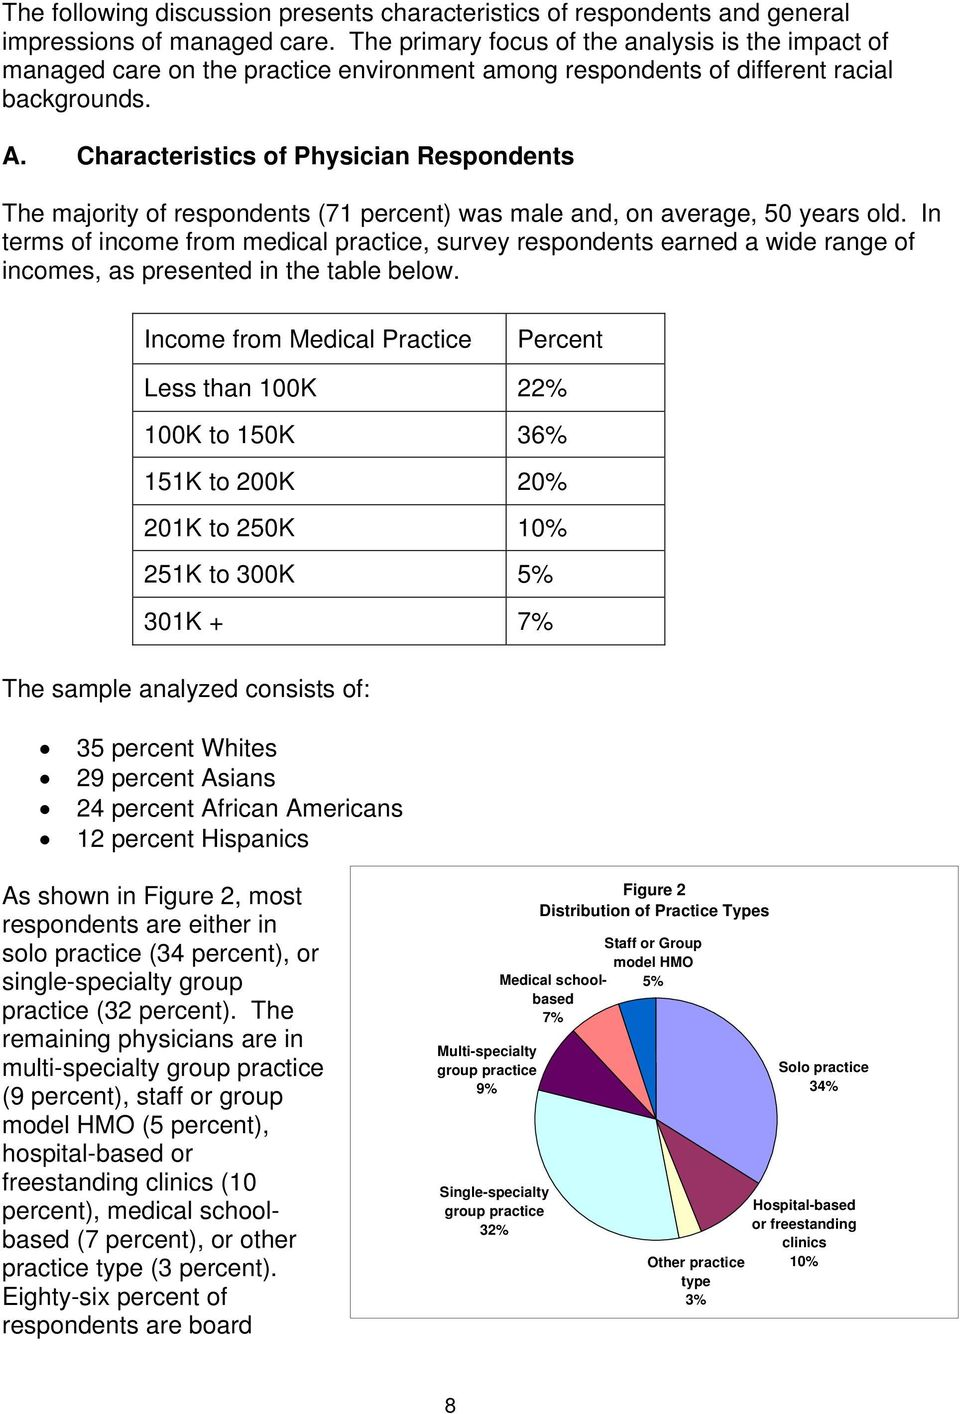 Characteristics of Physician Respondents The majority of respondents (71 percent) was male and, on average, 50 years old.